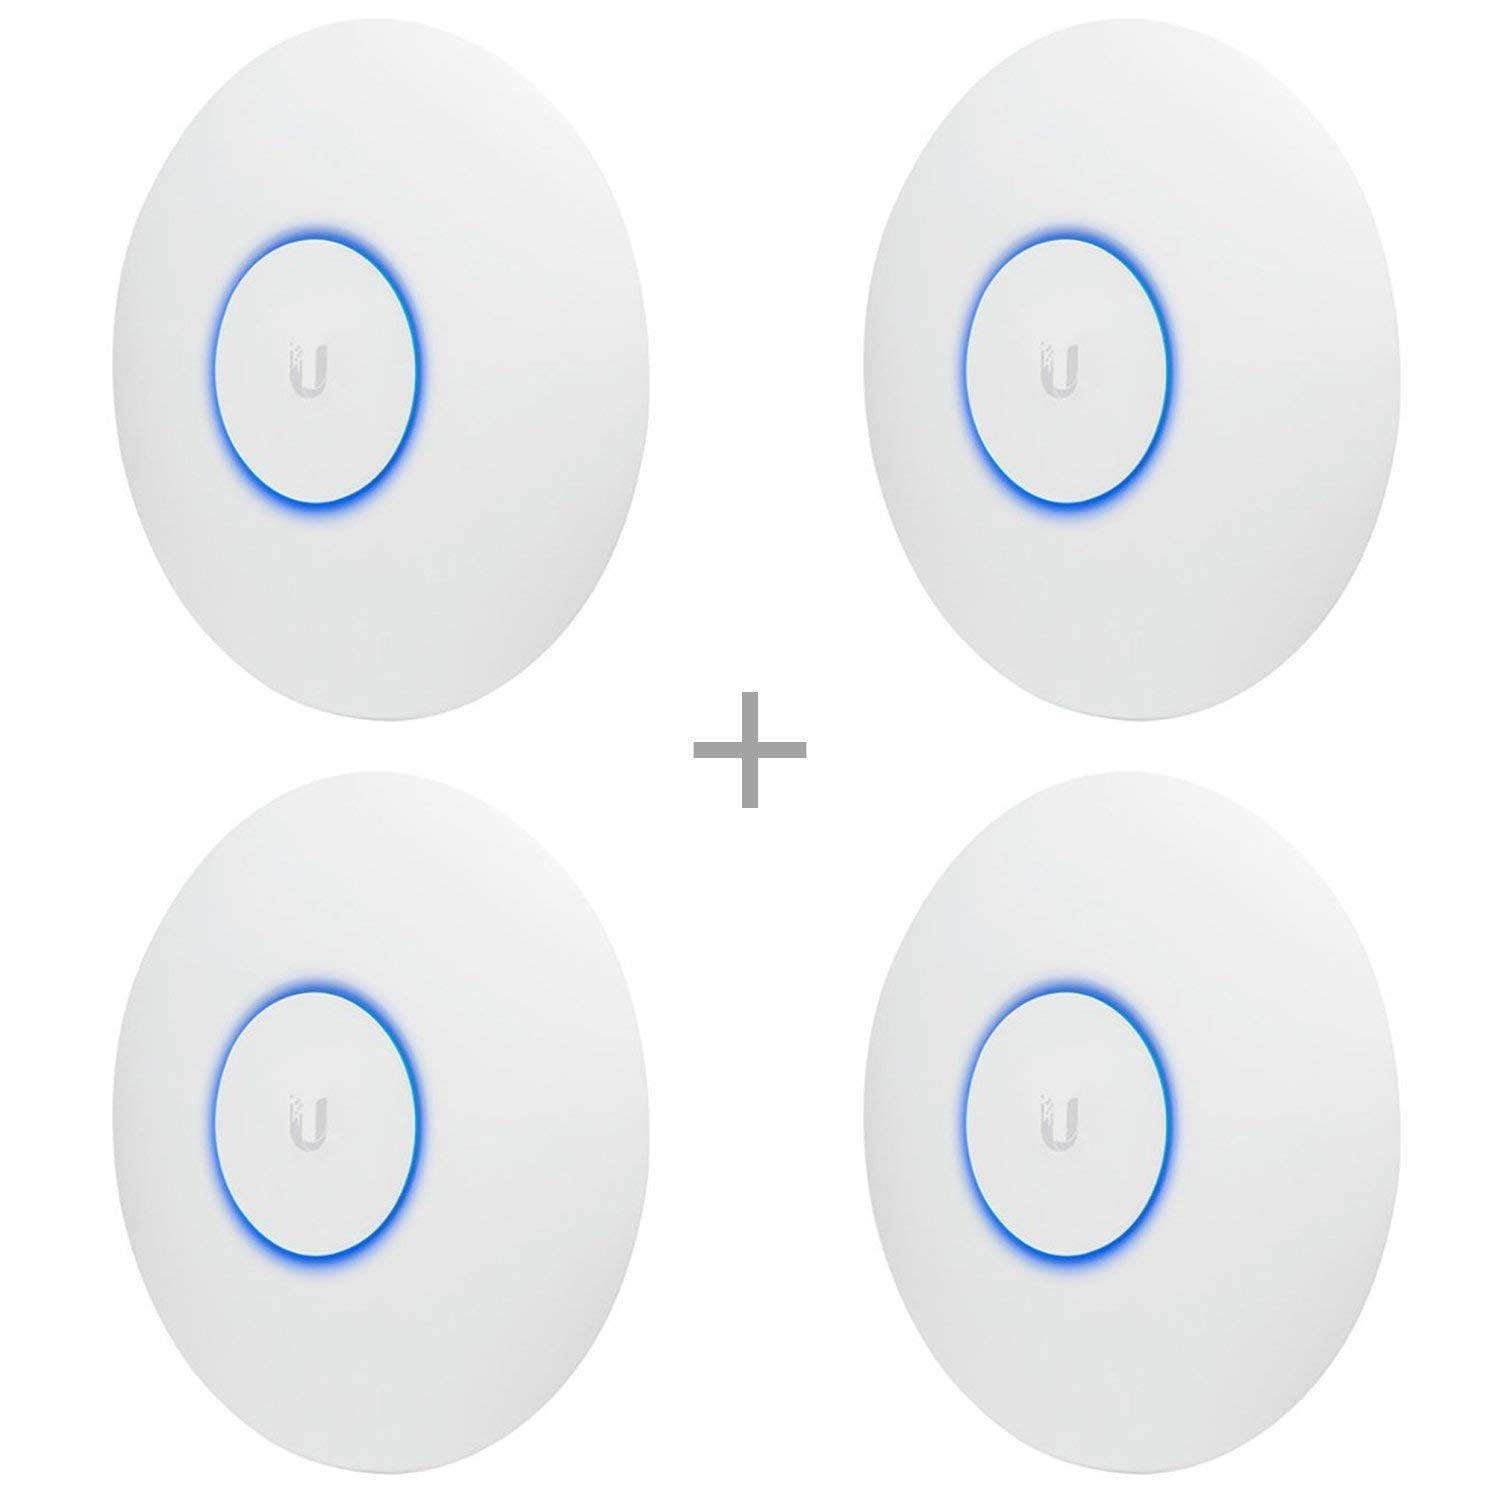 Ubiquiti Networks UAP-AC-PRO-US Unifi 802.11ac Dual-Radio PRO Access Point (4 Items) by Ubiquiti Networks